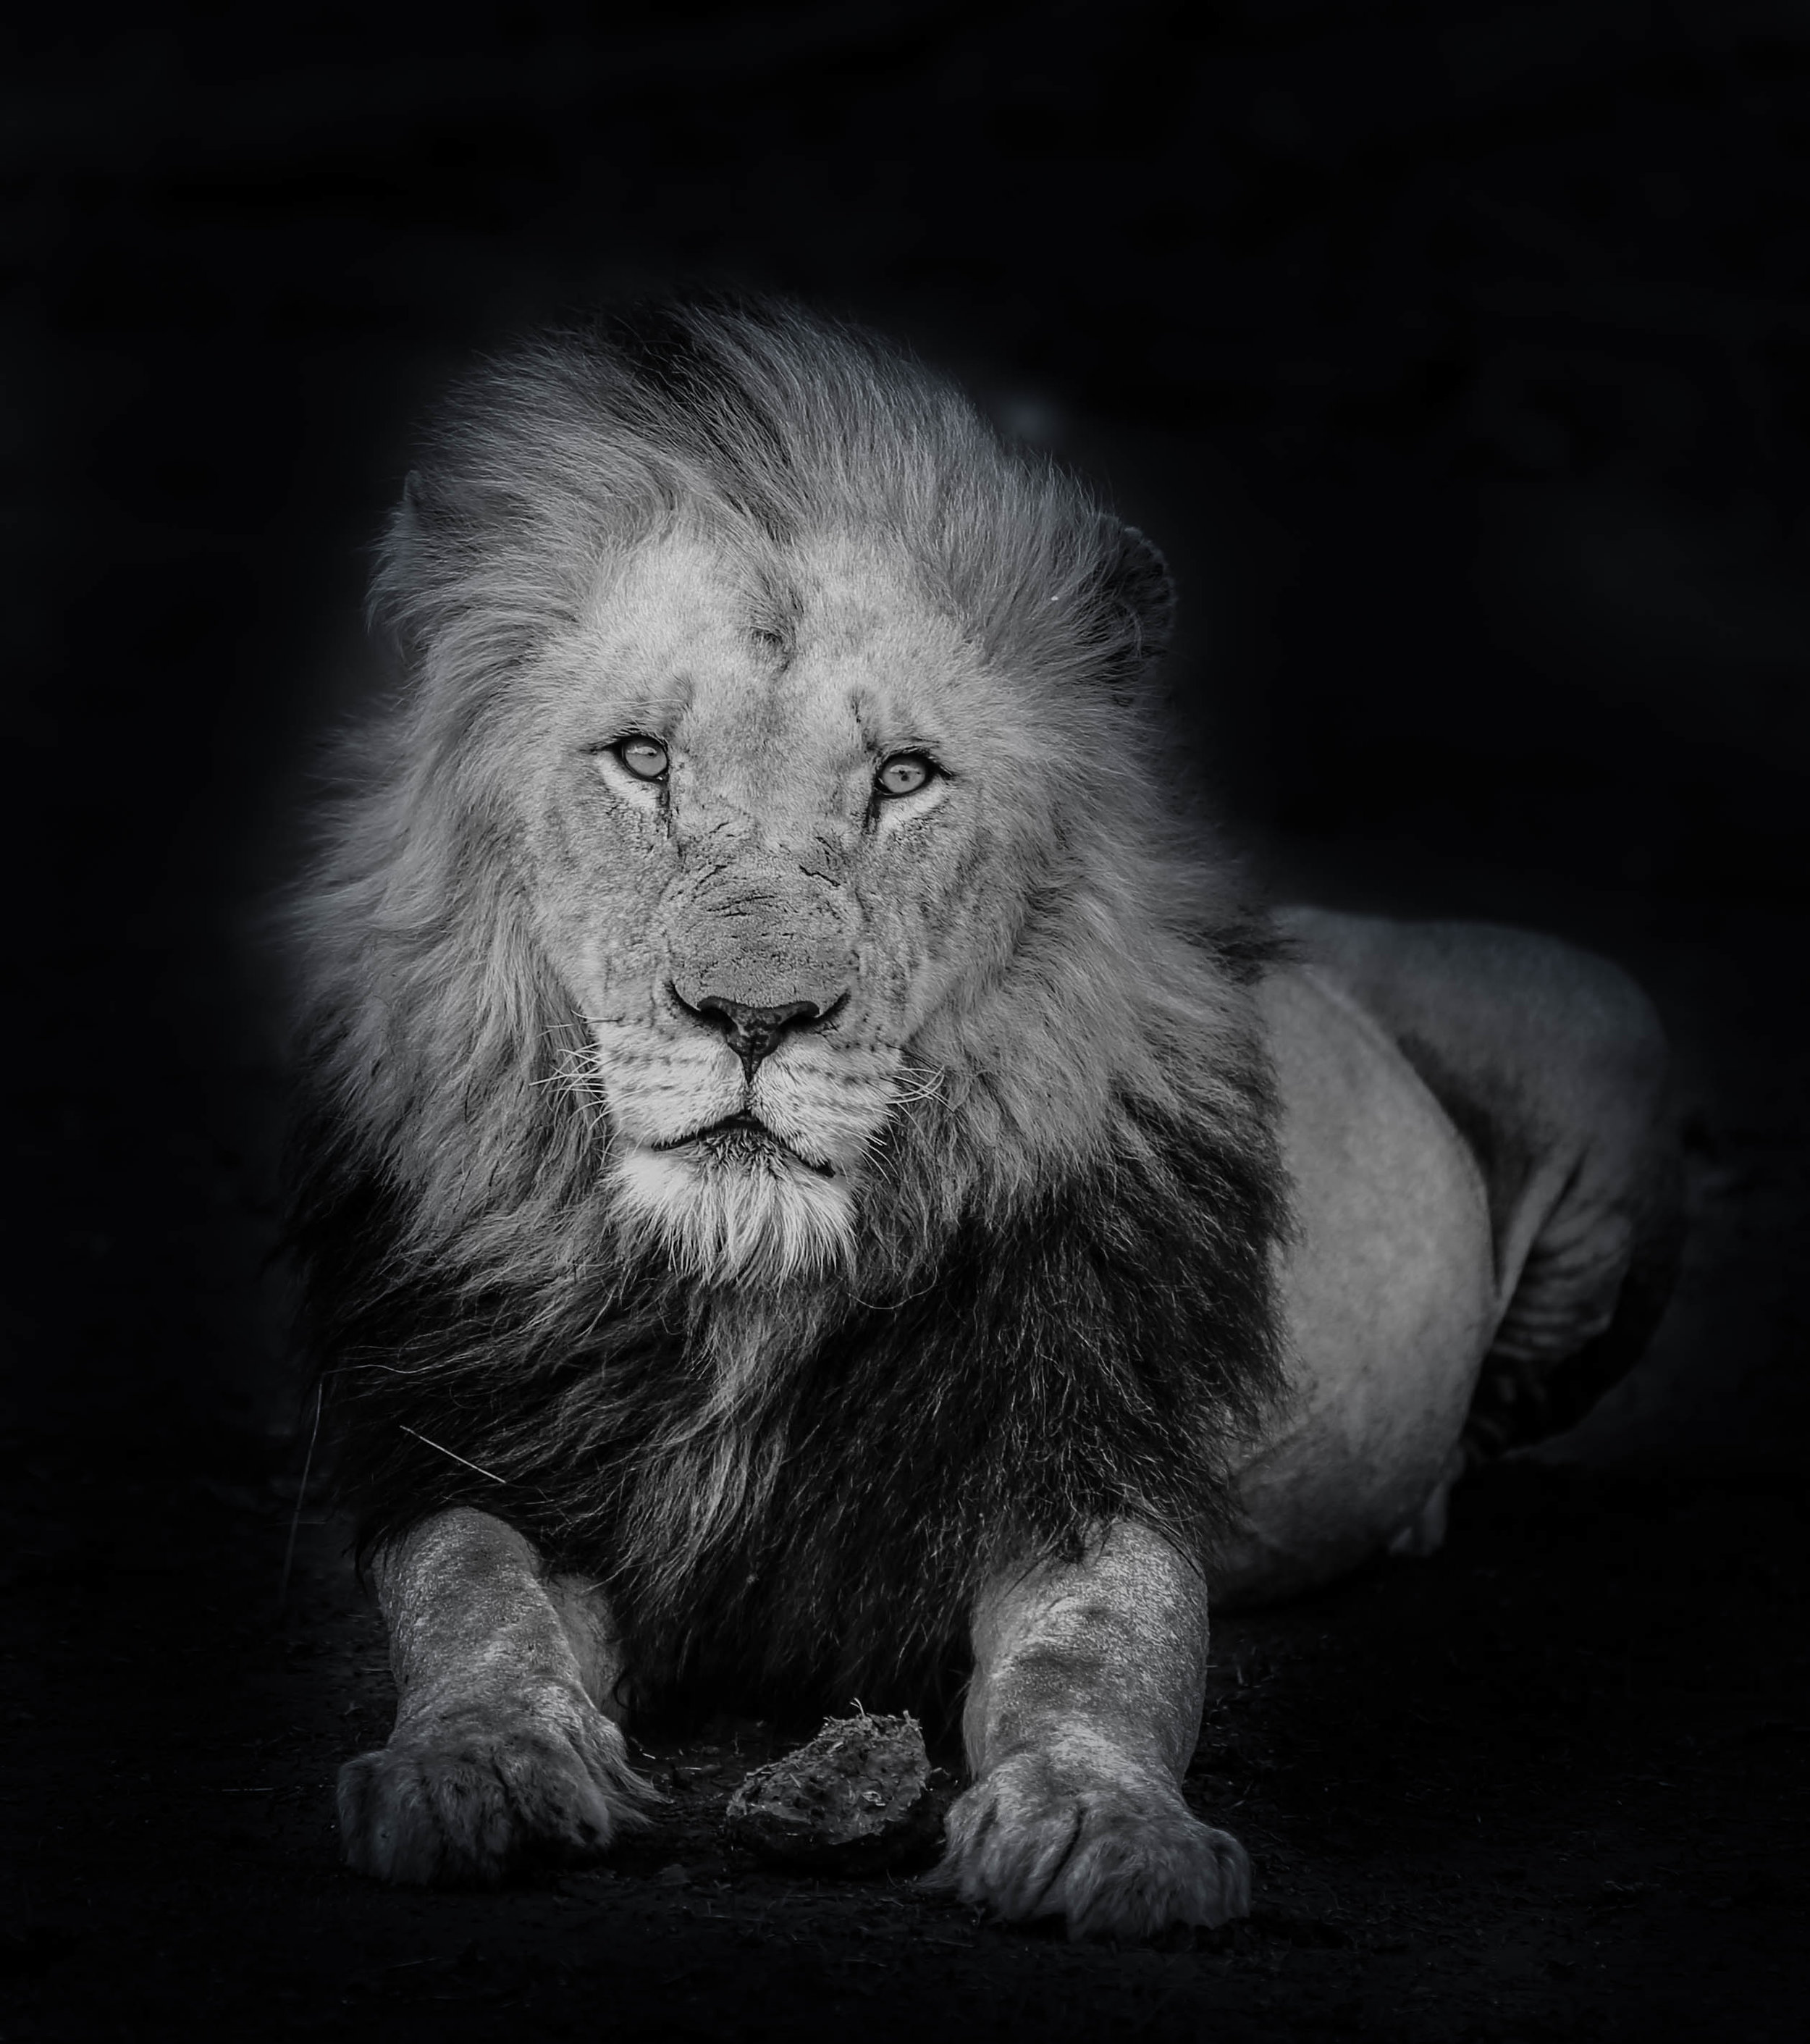 The King in B&W